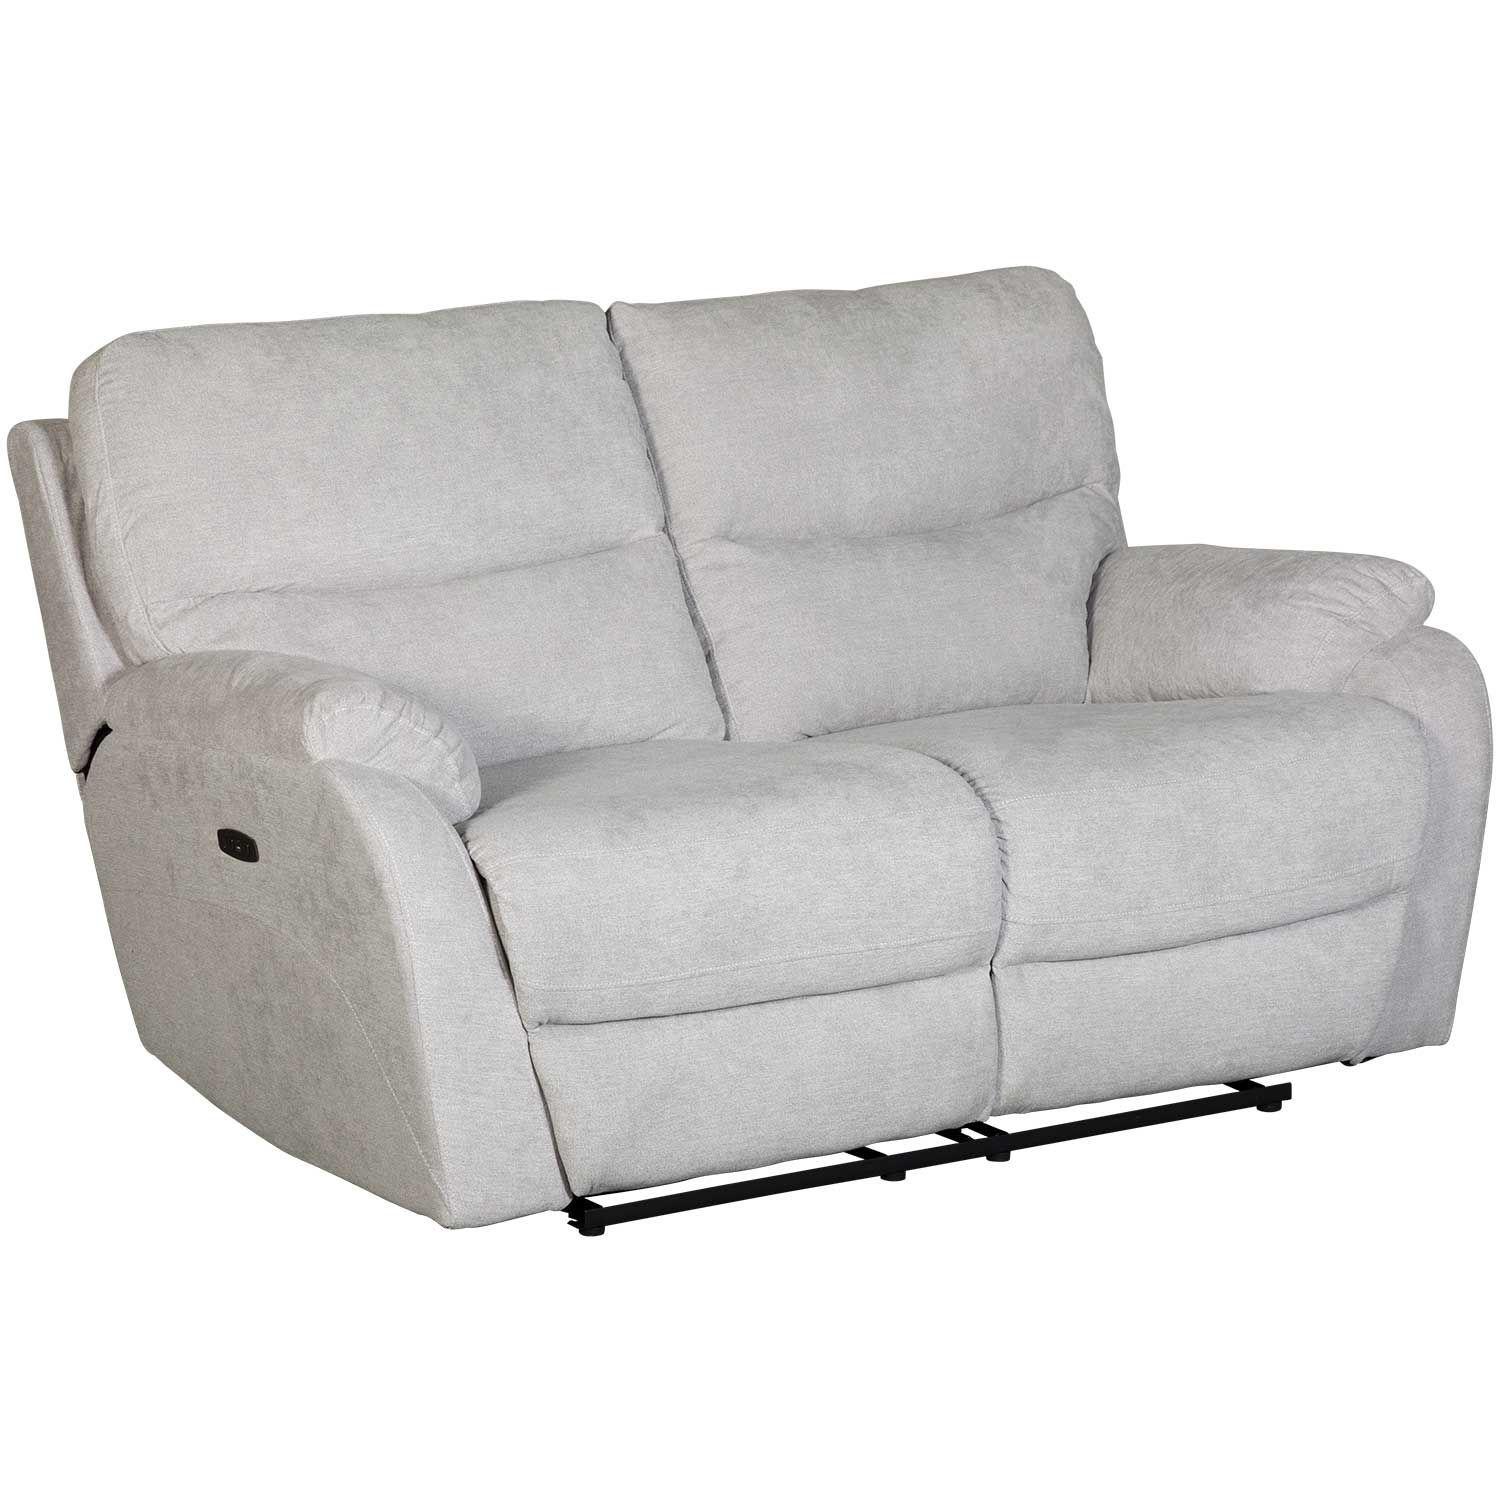 Picture of Piven Power Reclining Loveseat with Adjustable Headrest